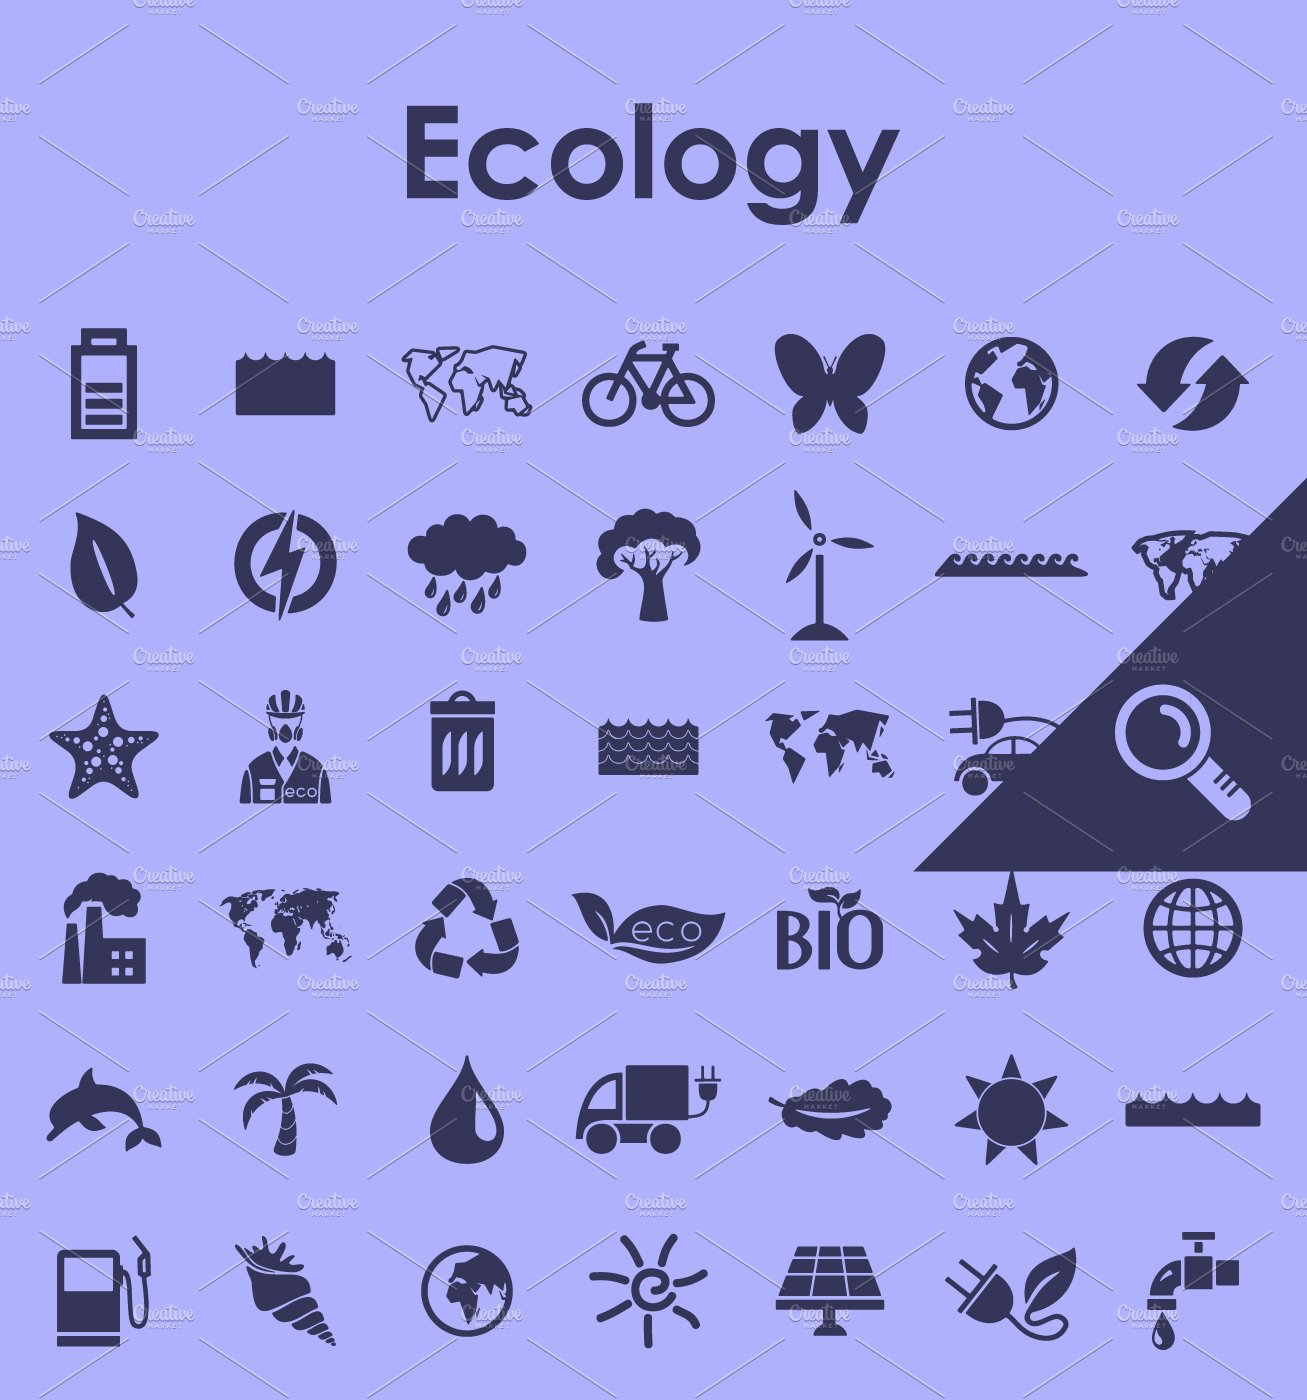 cover letters examples 42 ecology simple icons icons creative market 21203 | setsimple73 02 01 01